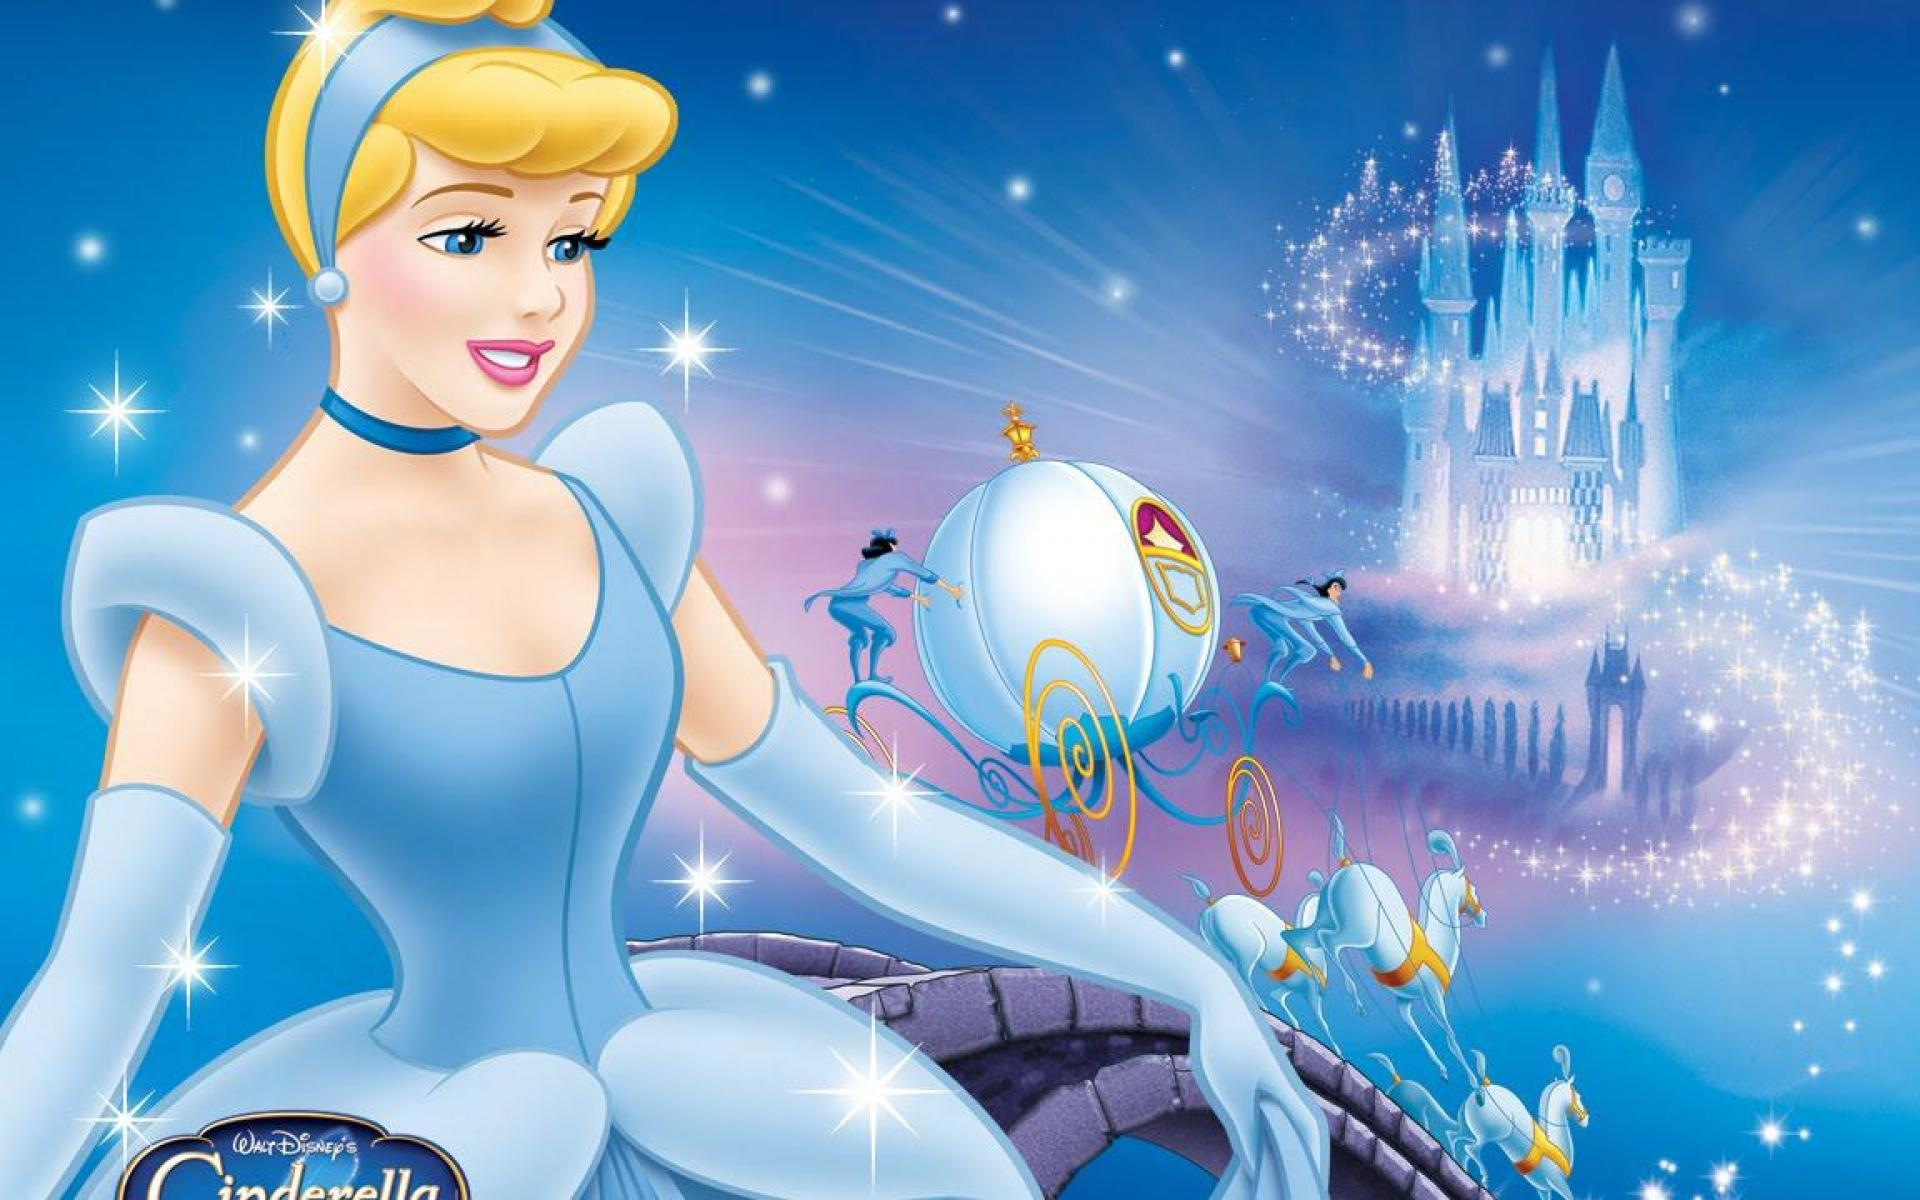 Free 480x800 3d Wallpapers Disney Cinderella Princess Free Hd Wallpaper